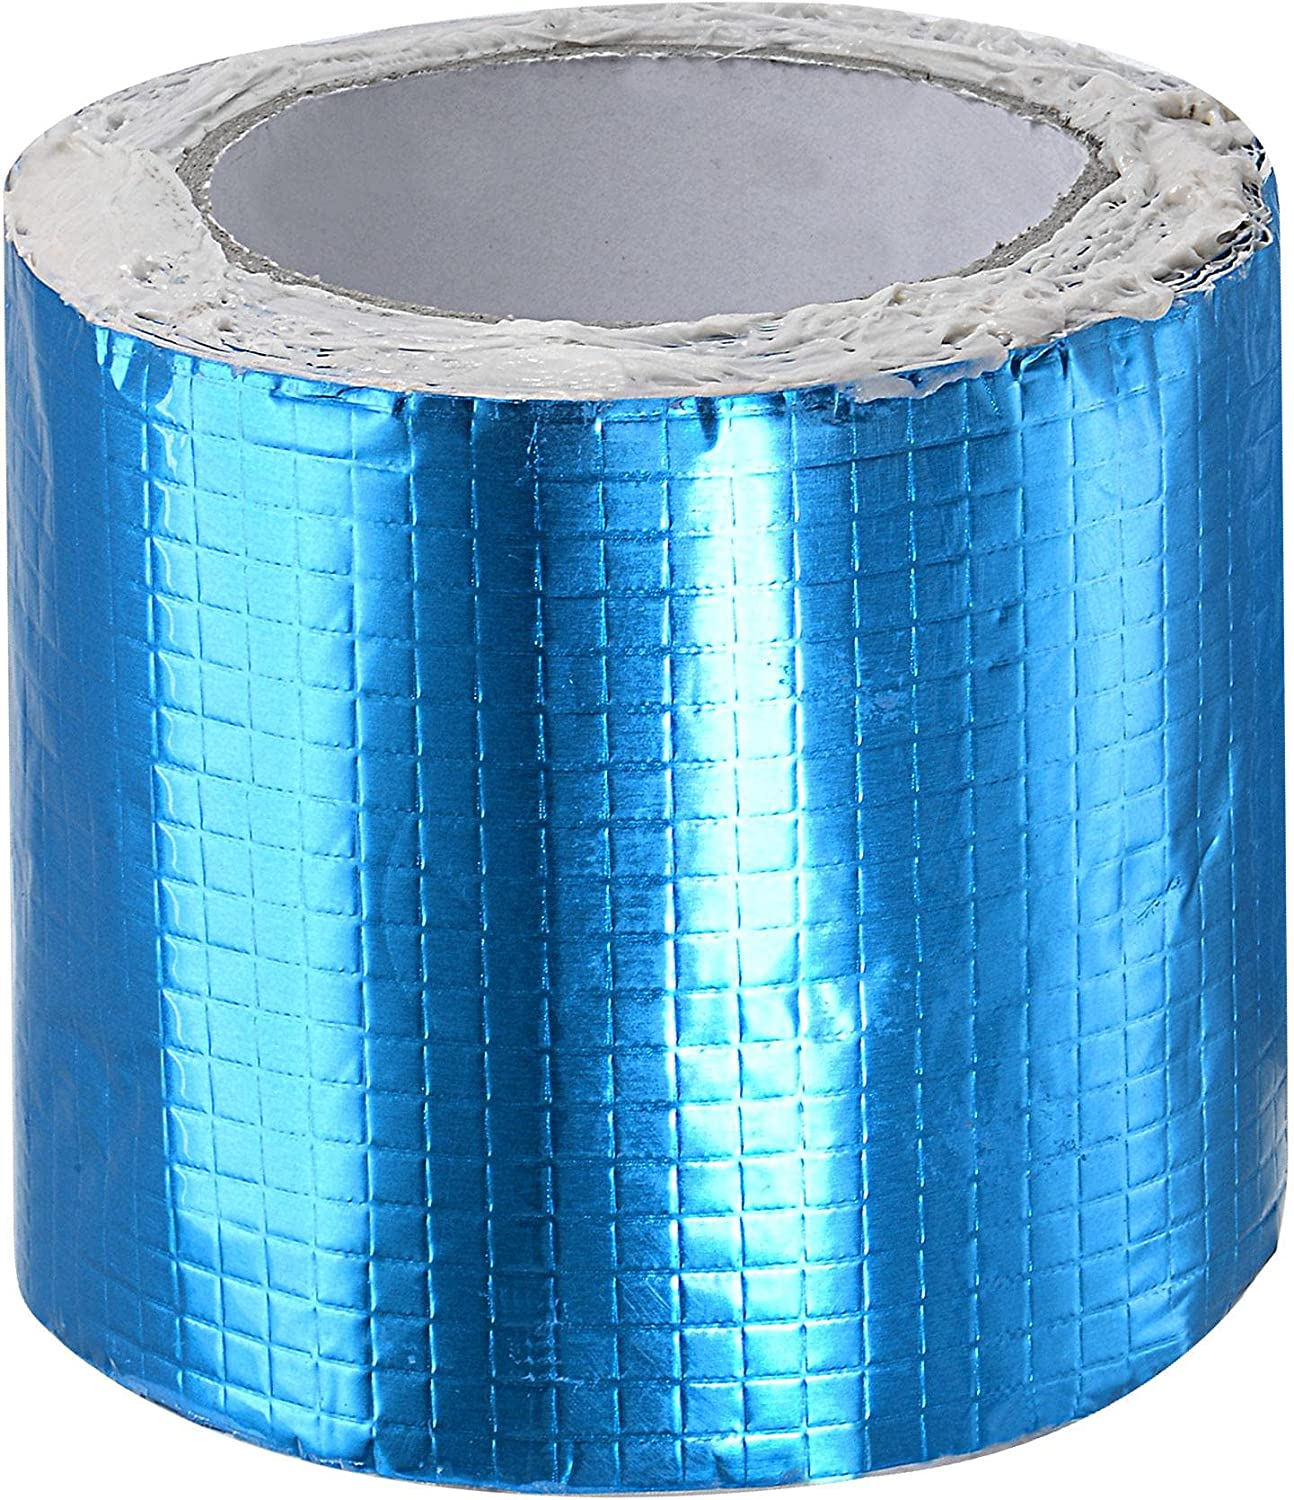 Outlet ☆ Free Shipping uxcell Butyl Rubber Aluminum Foil Al sold out. Tape 16ft Width Length Stro 4